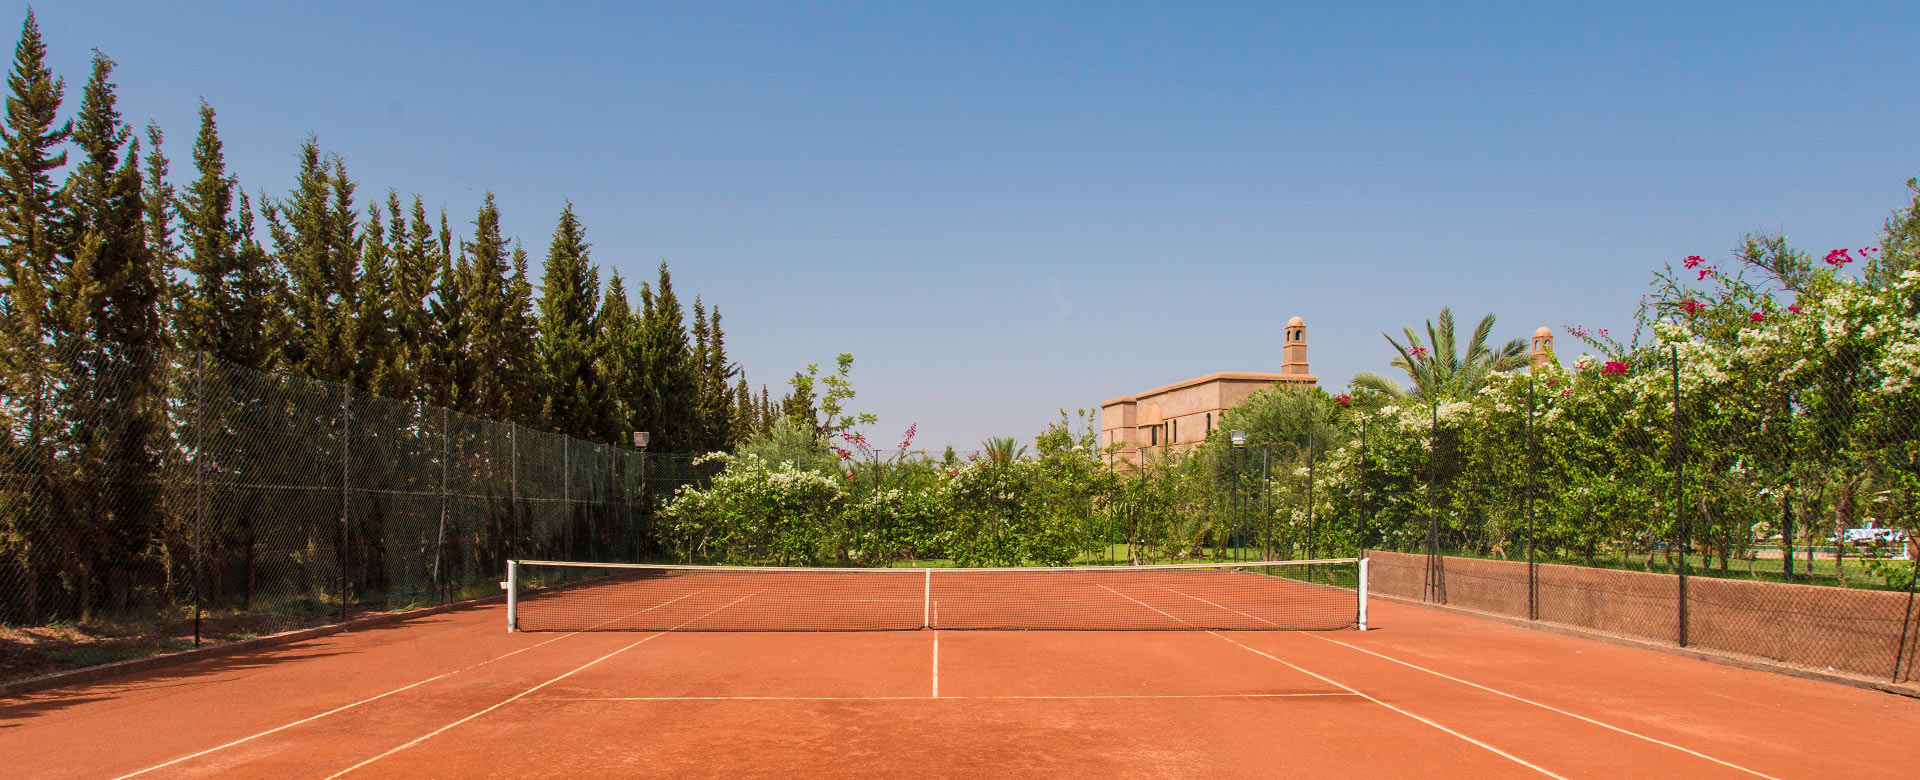 Villa Rentals In Marrakech With Tennis Courts Villanovo